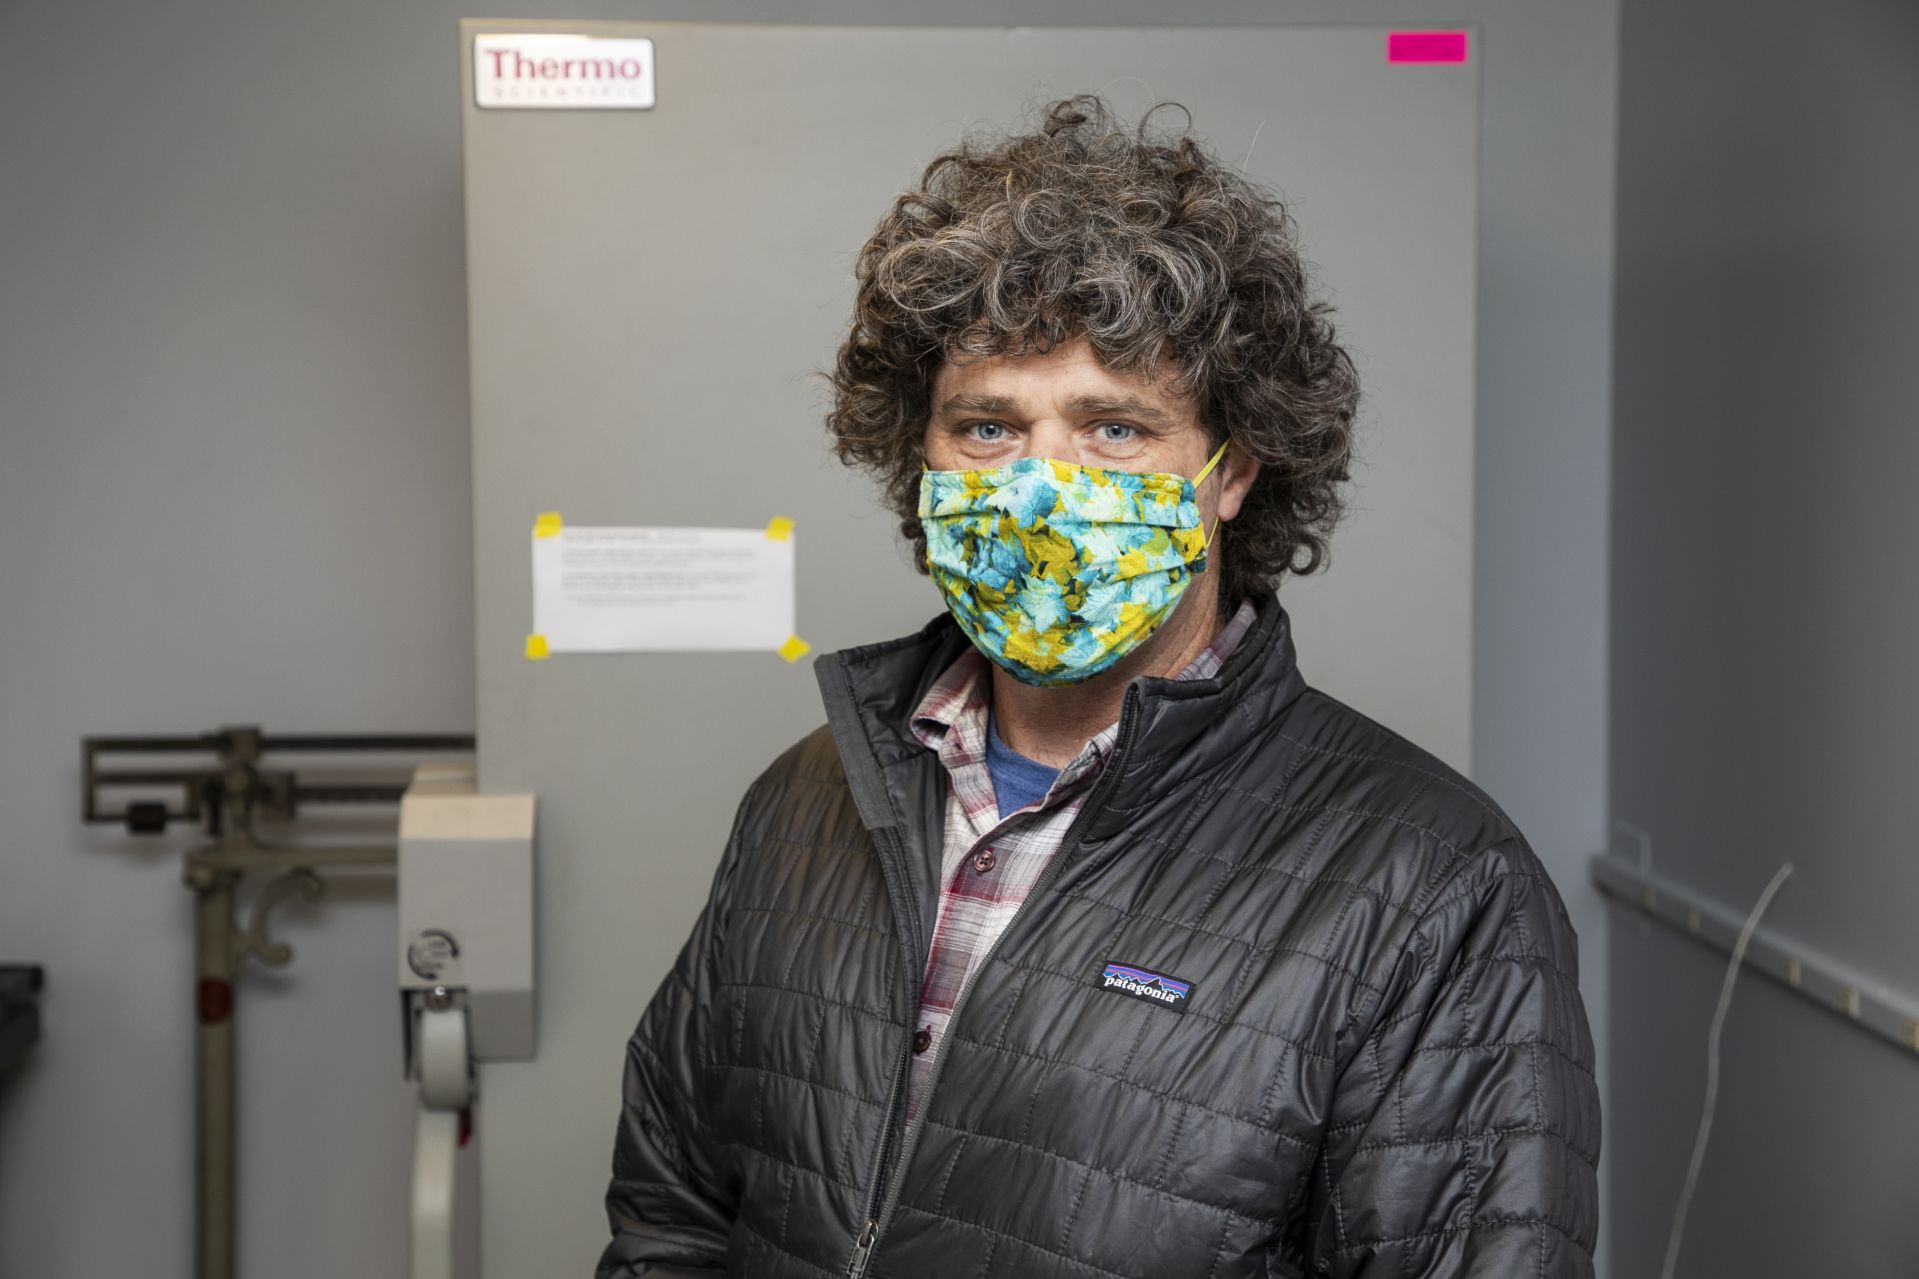 Brett A. Huggett, associate professor biology, poses next to a Thermo Scientific freezer seen inside Carnegie Science Hall at Bates College on December 15, 2020.